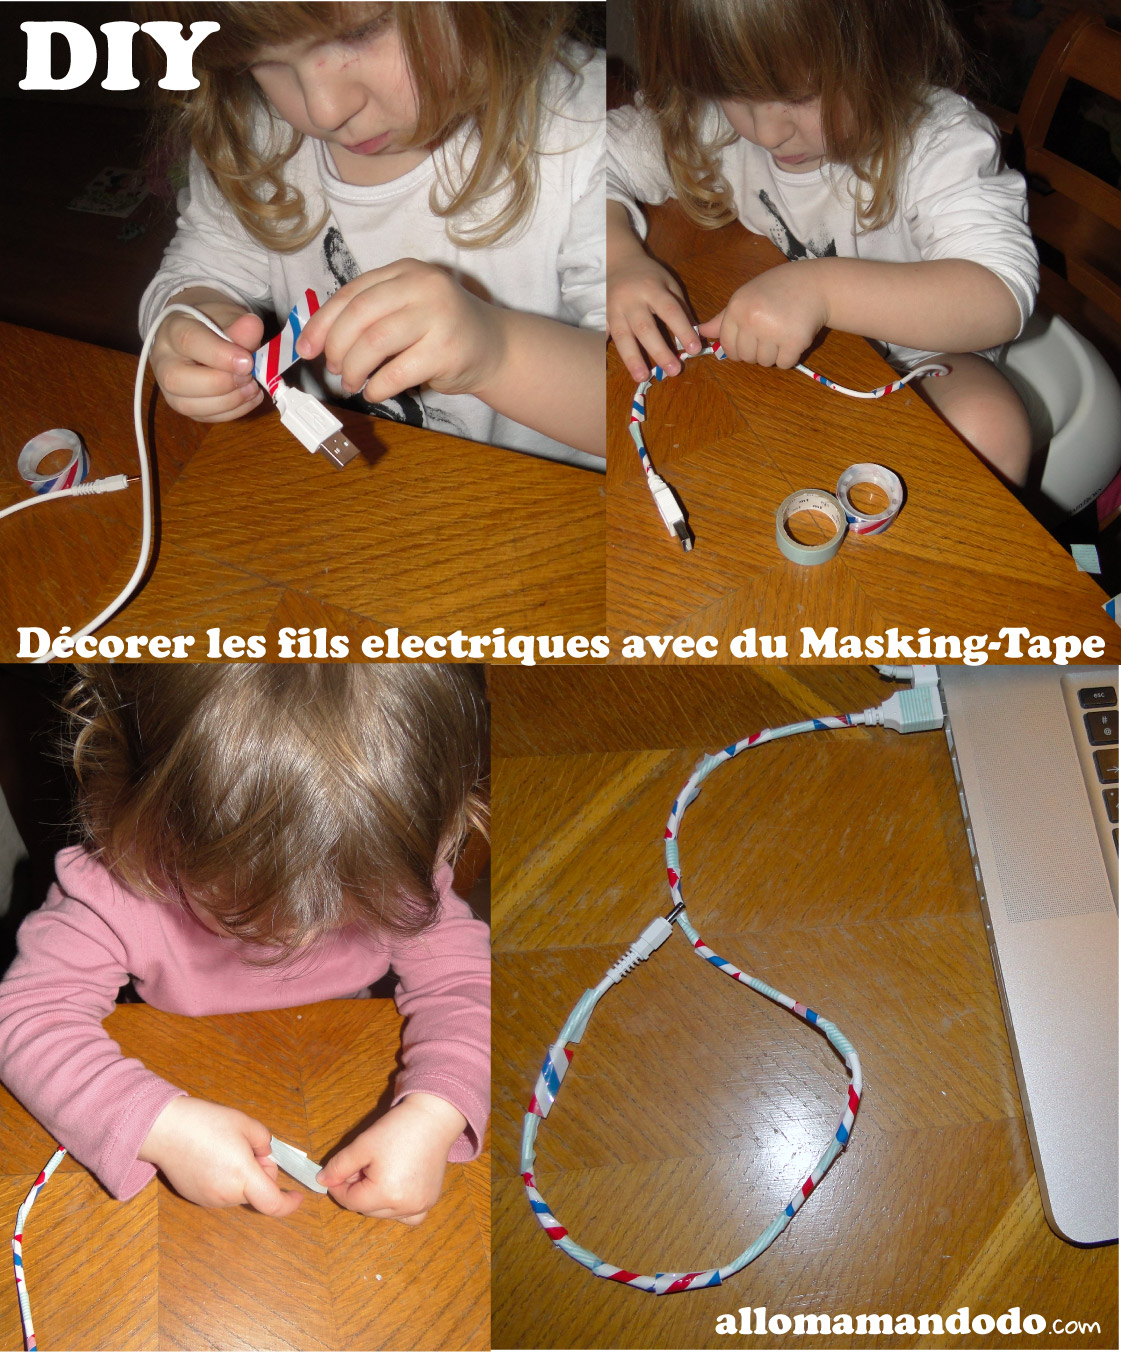 diy avec du masking tape id e activit pour enfants allo maman dodo. Black Bedroom Furniture Sets. Home Design Ideas